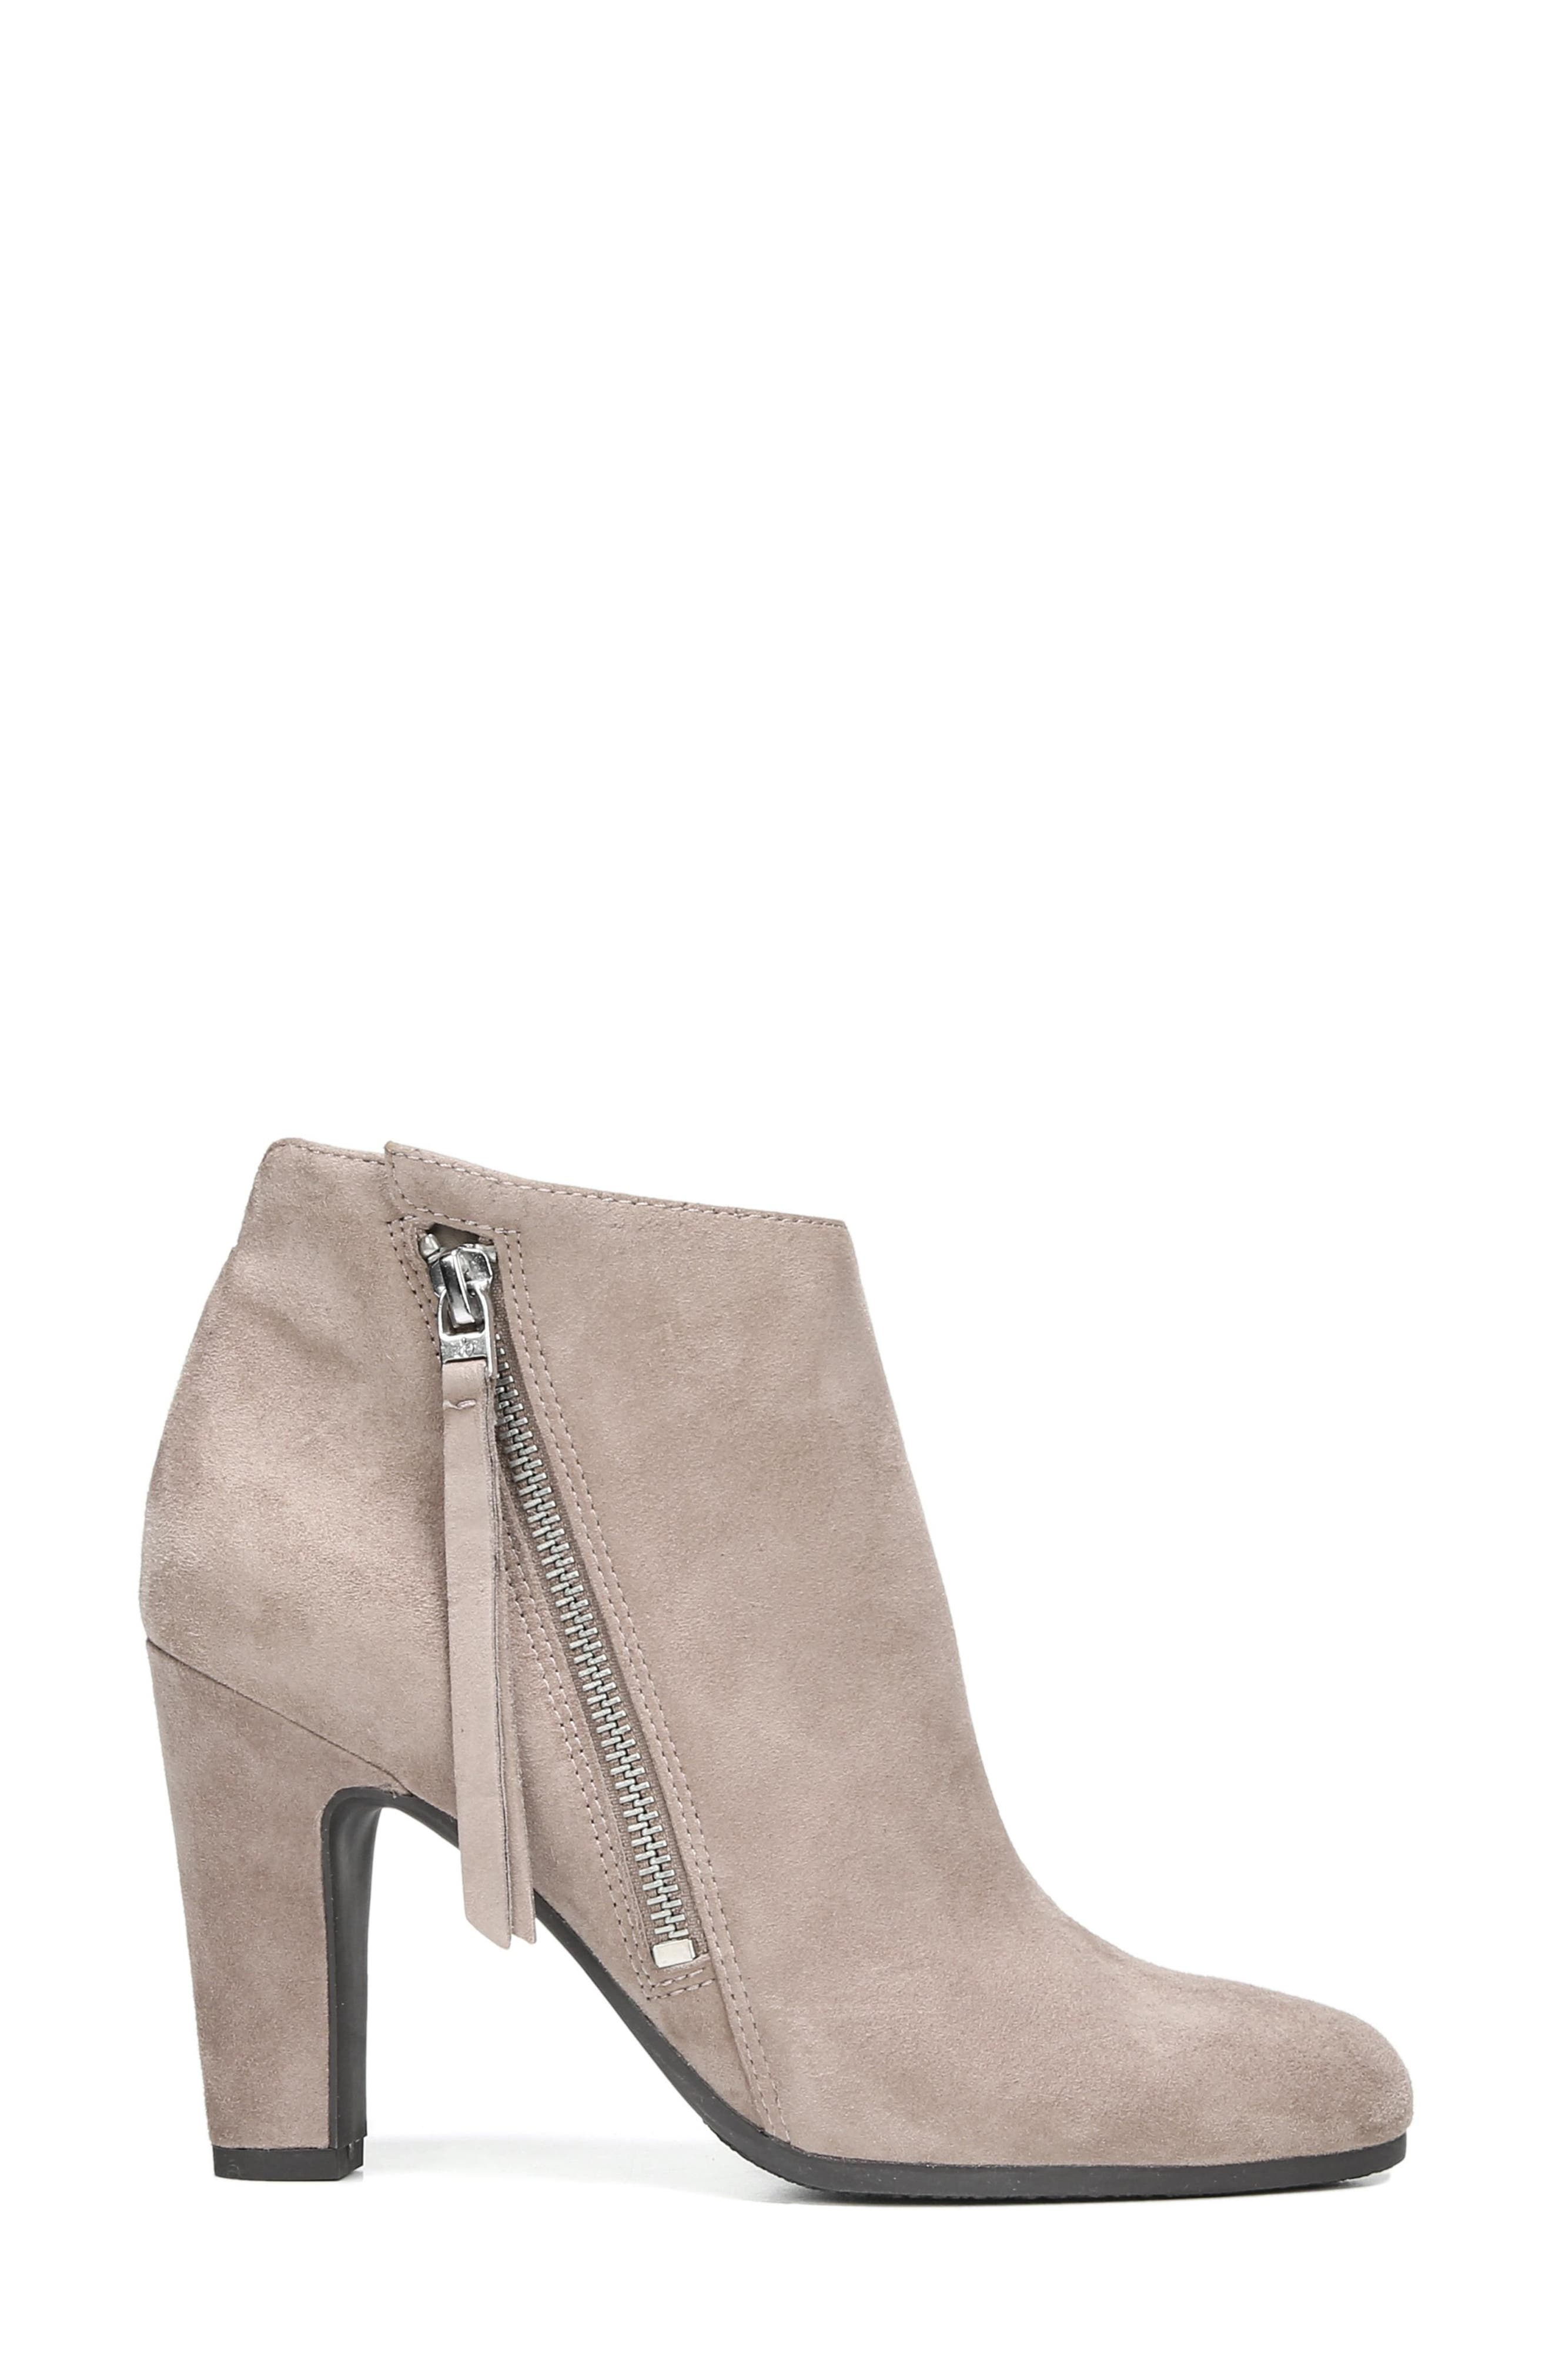 Sadee Angle Zip Bootie,                             Alternate thumbnail 3, color,                             New Putty Suede